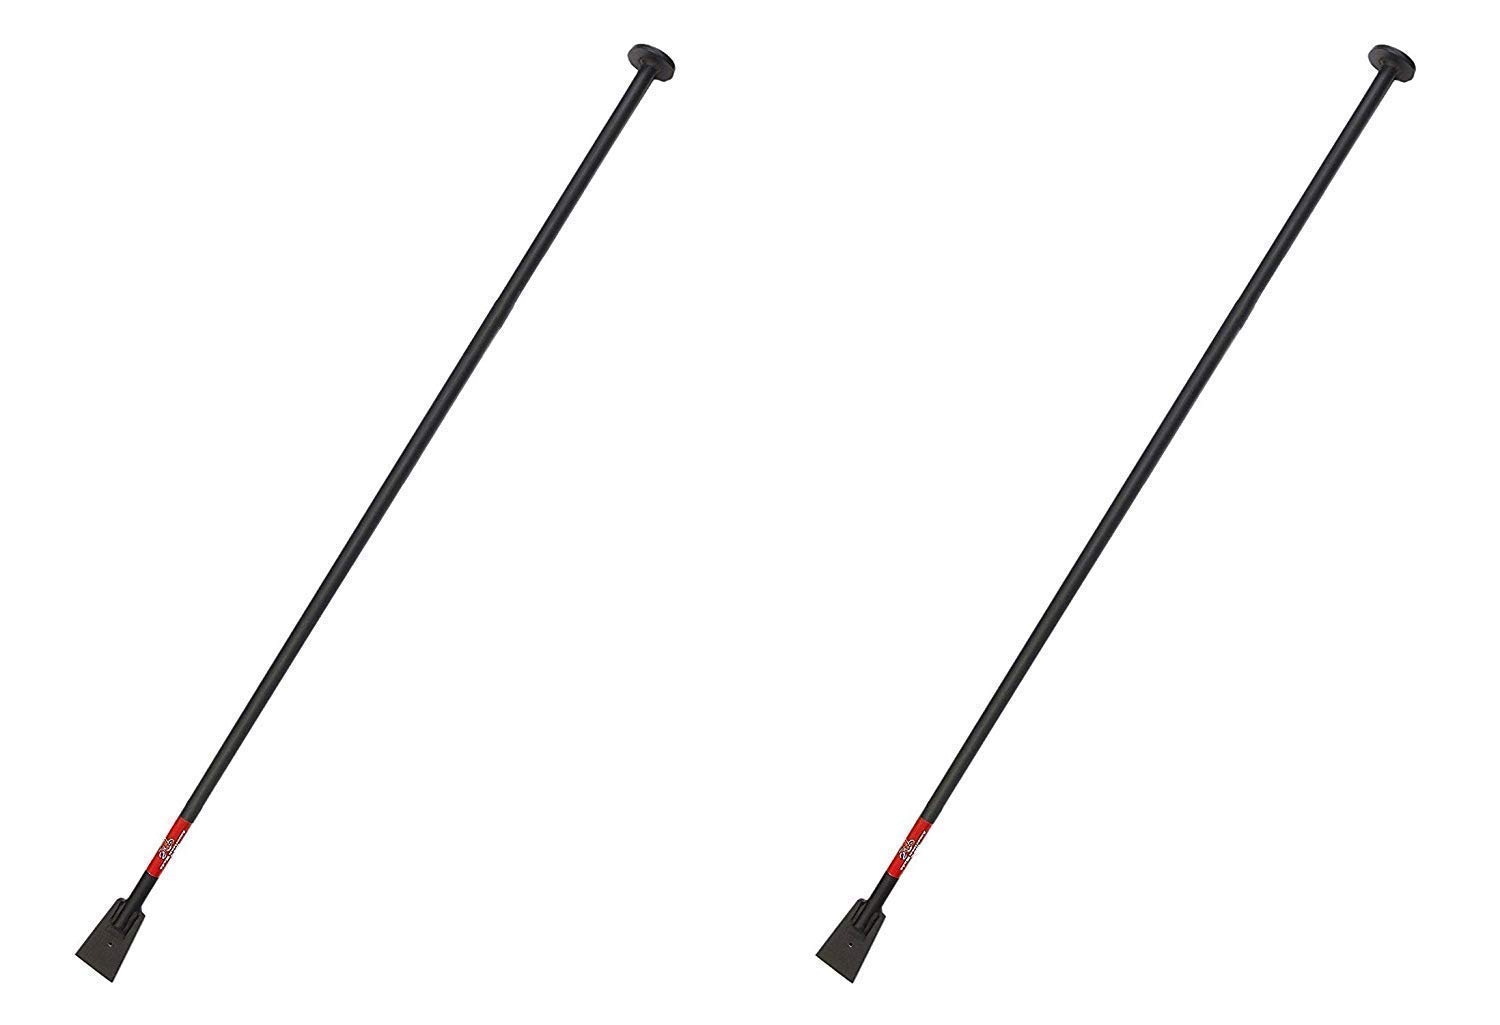 Bully Tools 92539 Steel Tamping and Digging Bar, 68-Inch (Pack of 2)